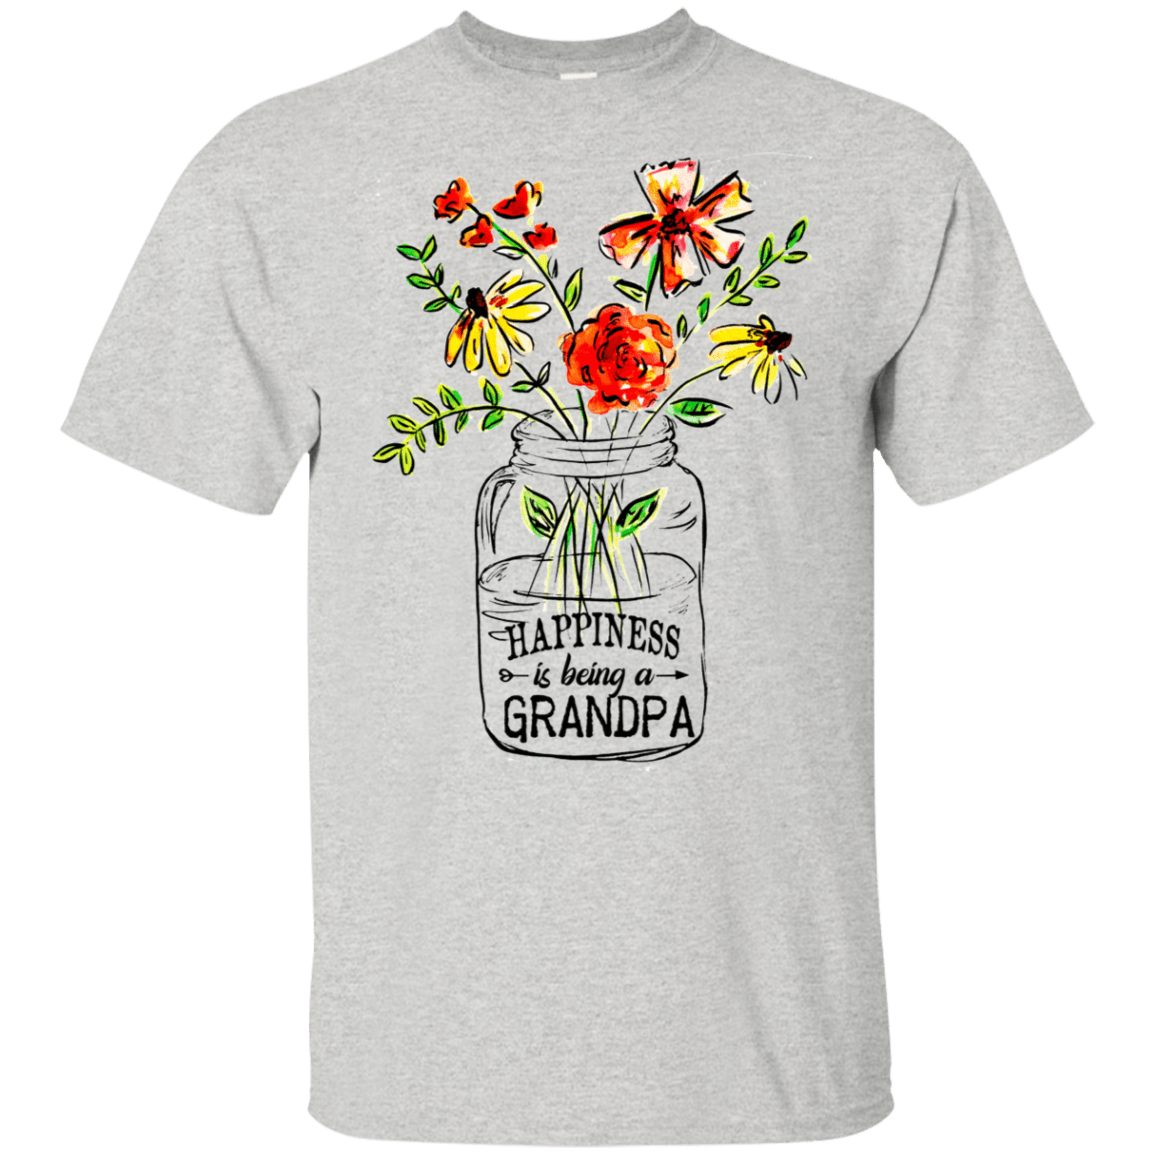 Happiness Is Being A Grandpa Flower 22-2475-74371518-12568 - Tee Ript